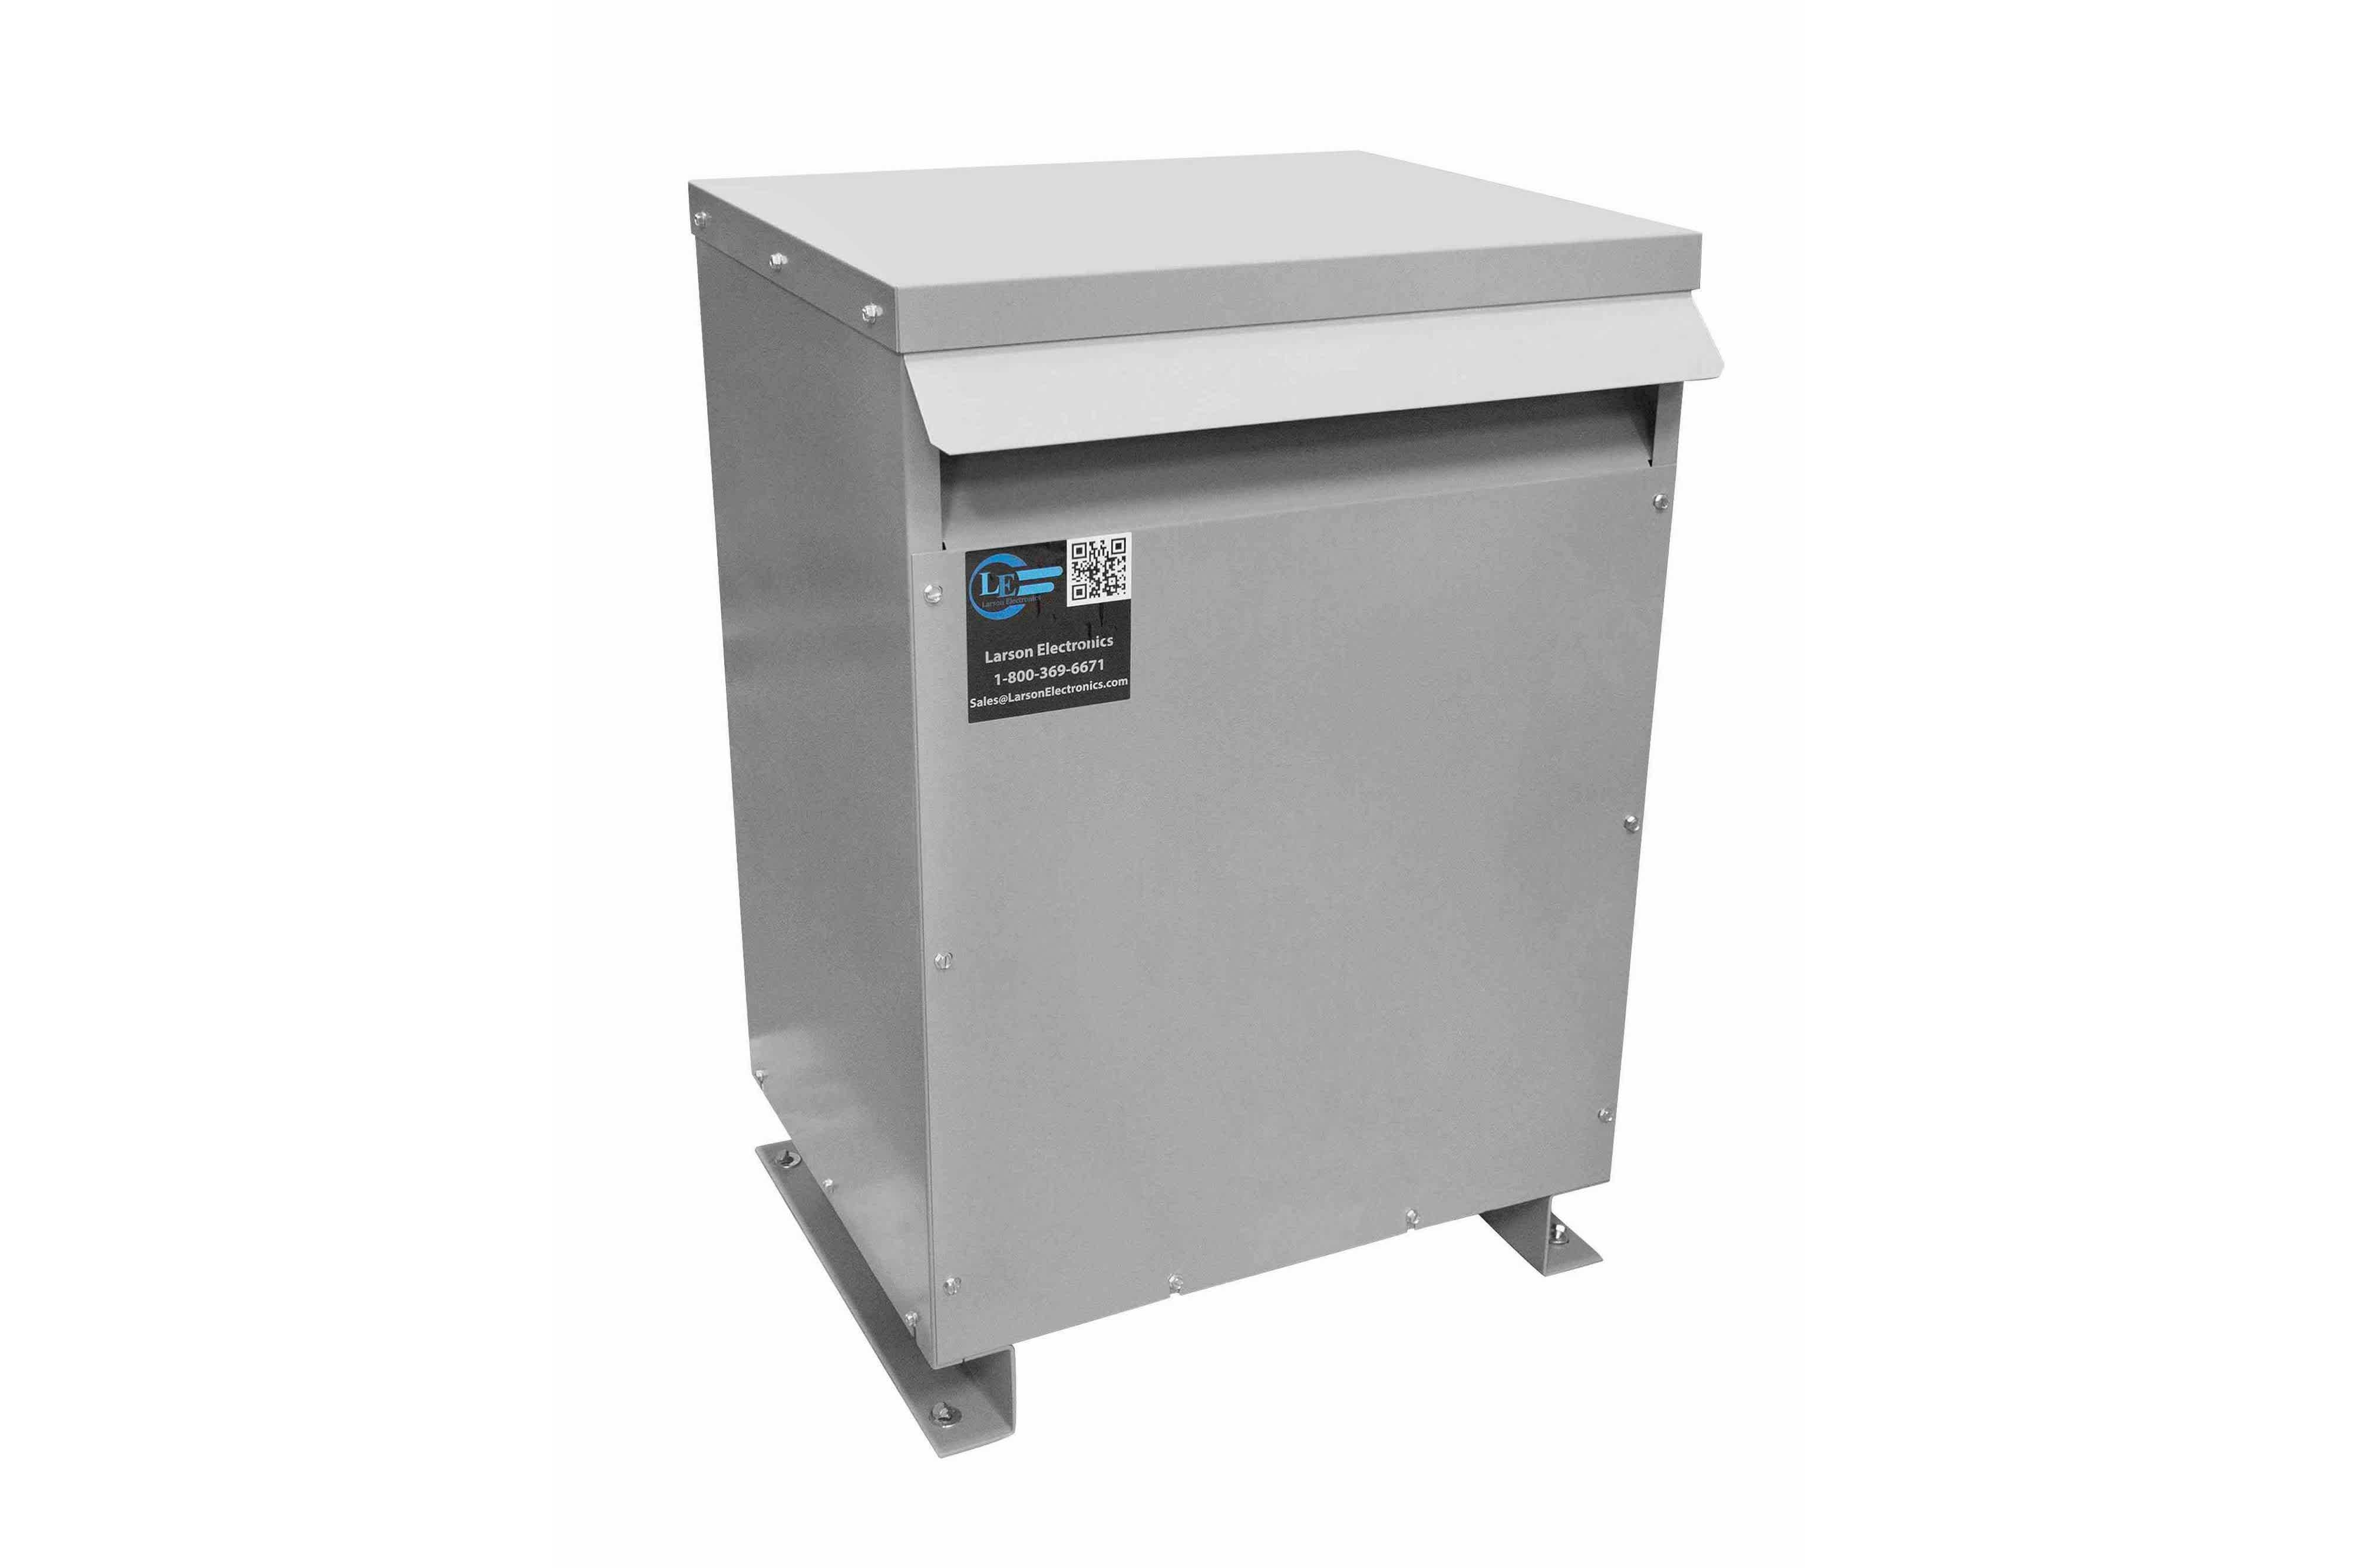 275 kVA 3PH Isolation Transformer, 600V Delta Primary, 380V Delta Secondary, N3R, Ventilated, 60 Hz